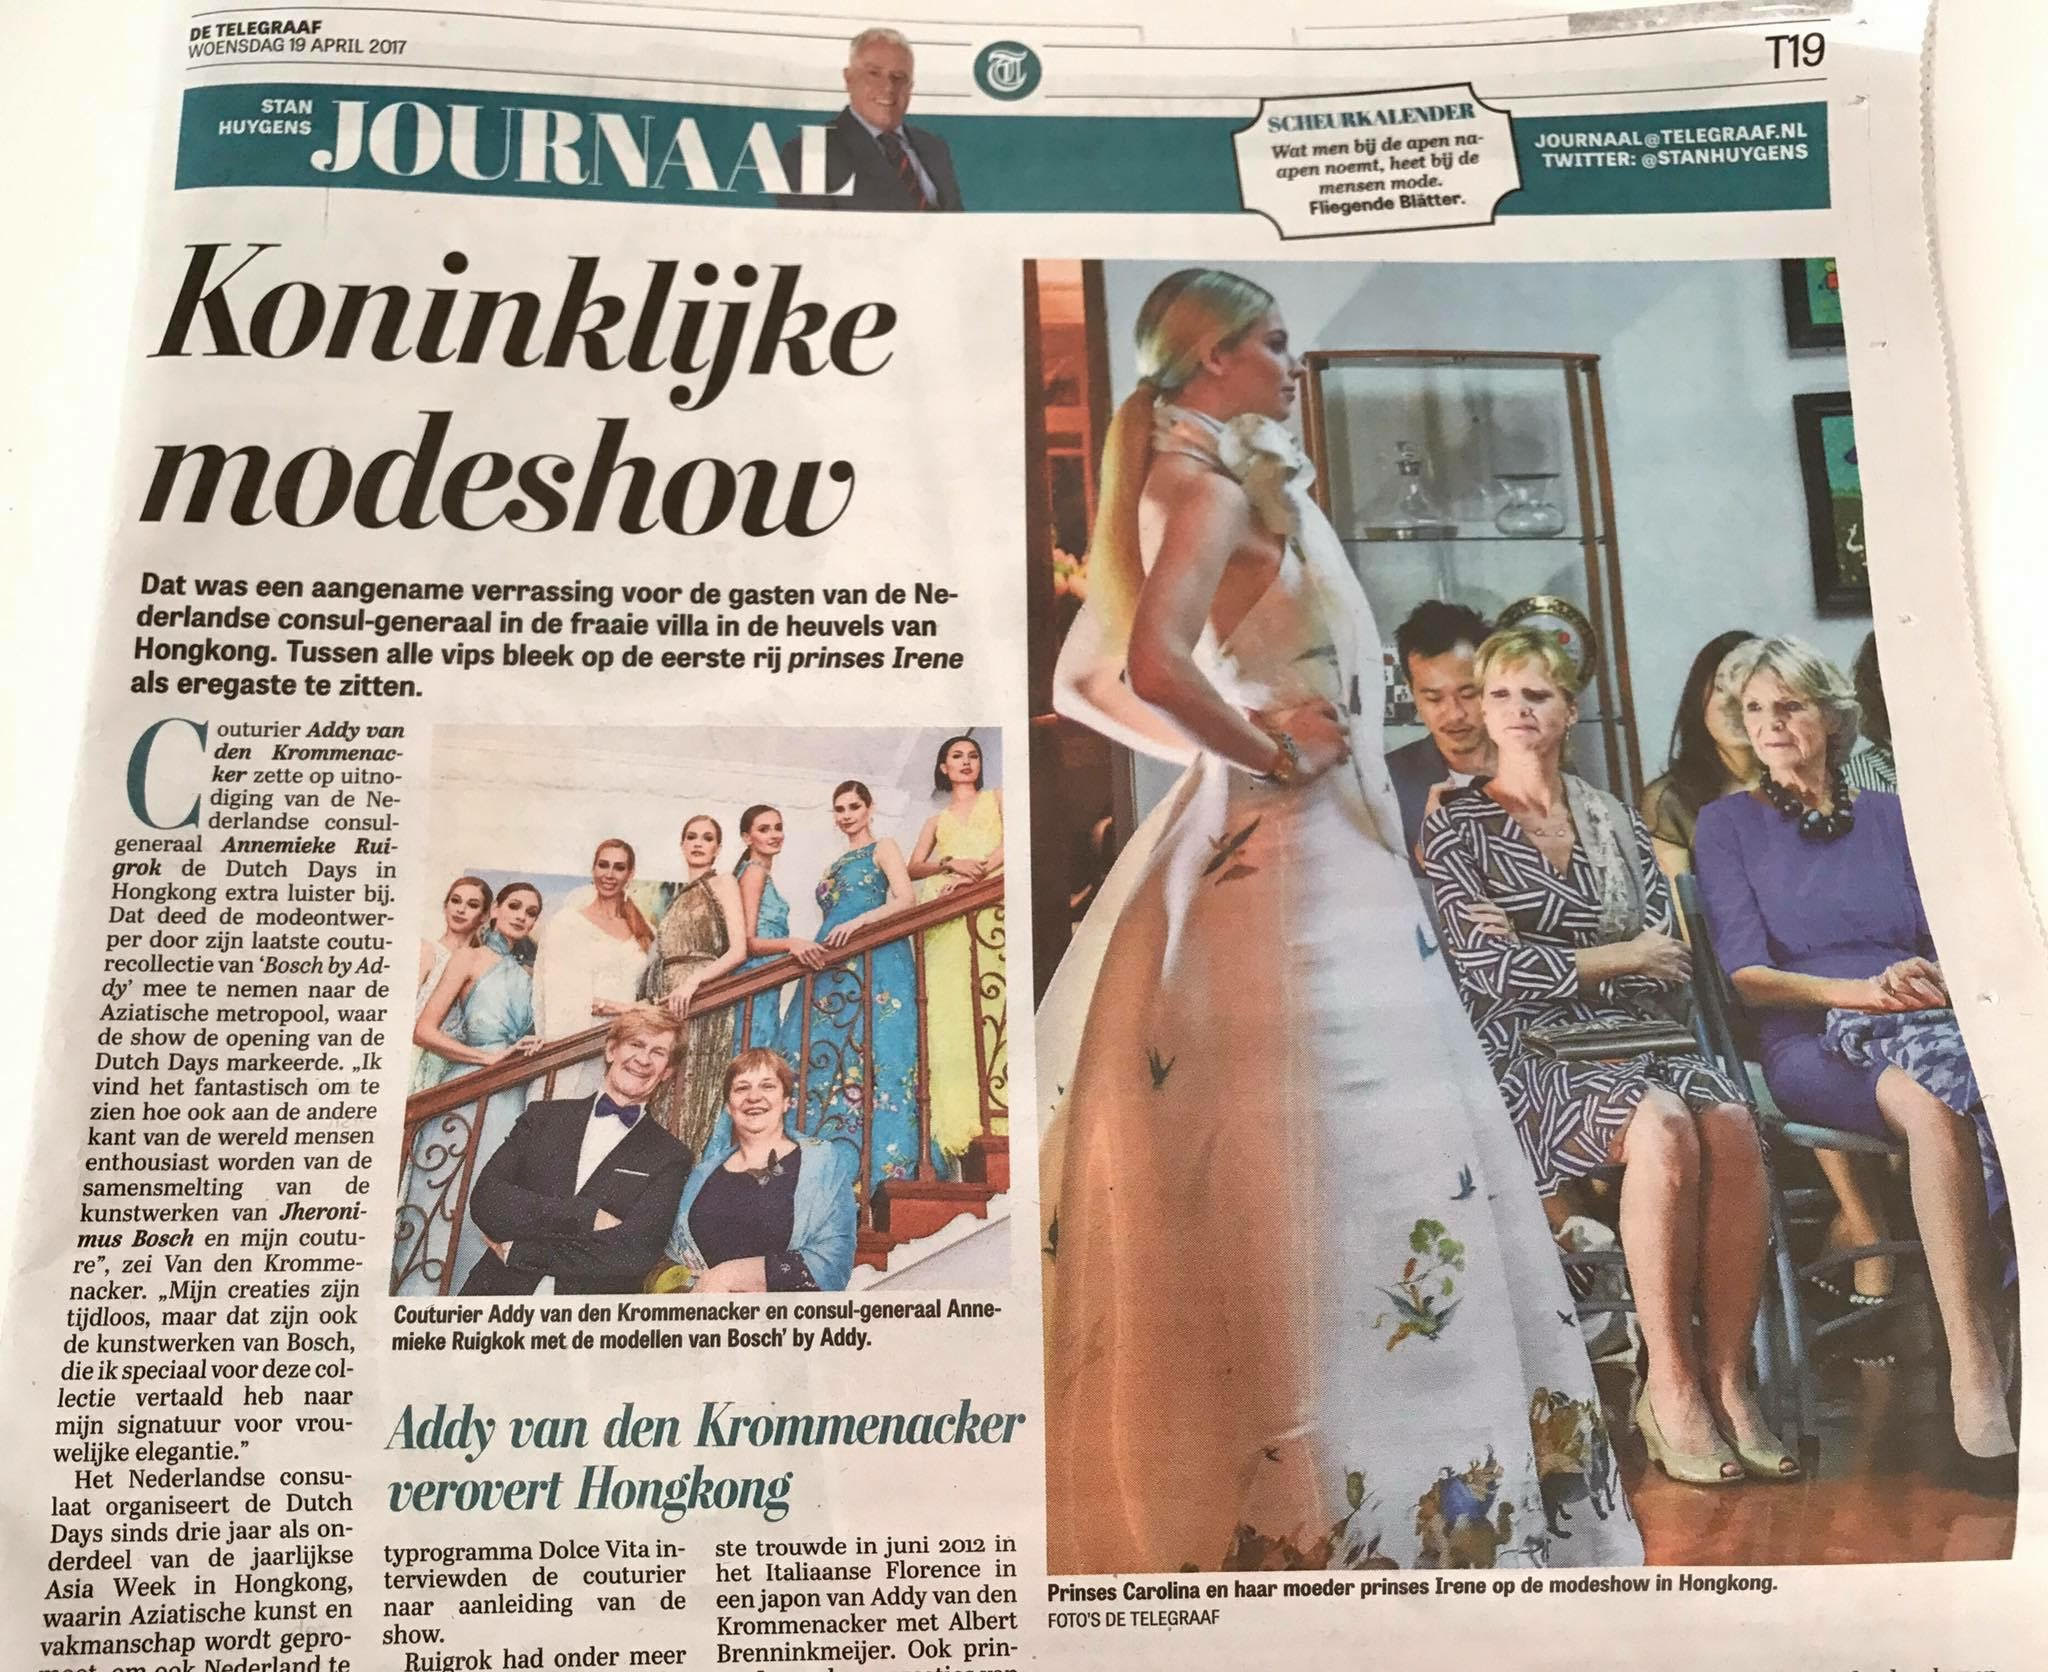 Publication De Telegraaf (19 april 2